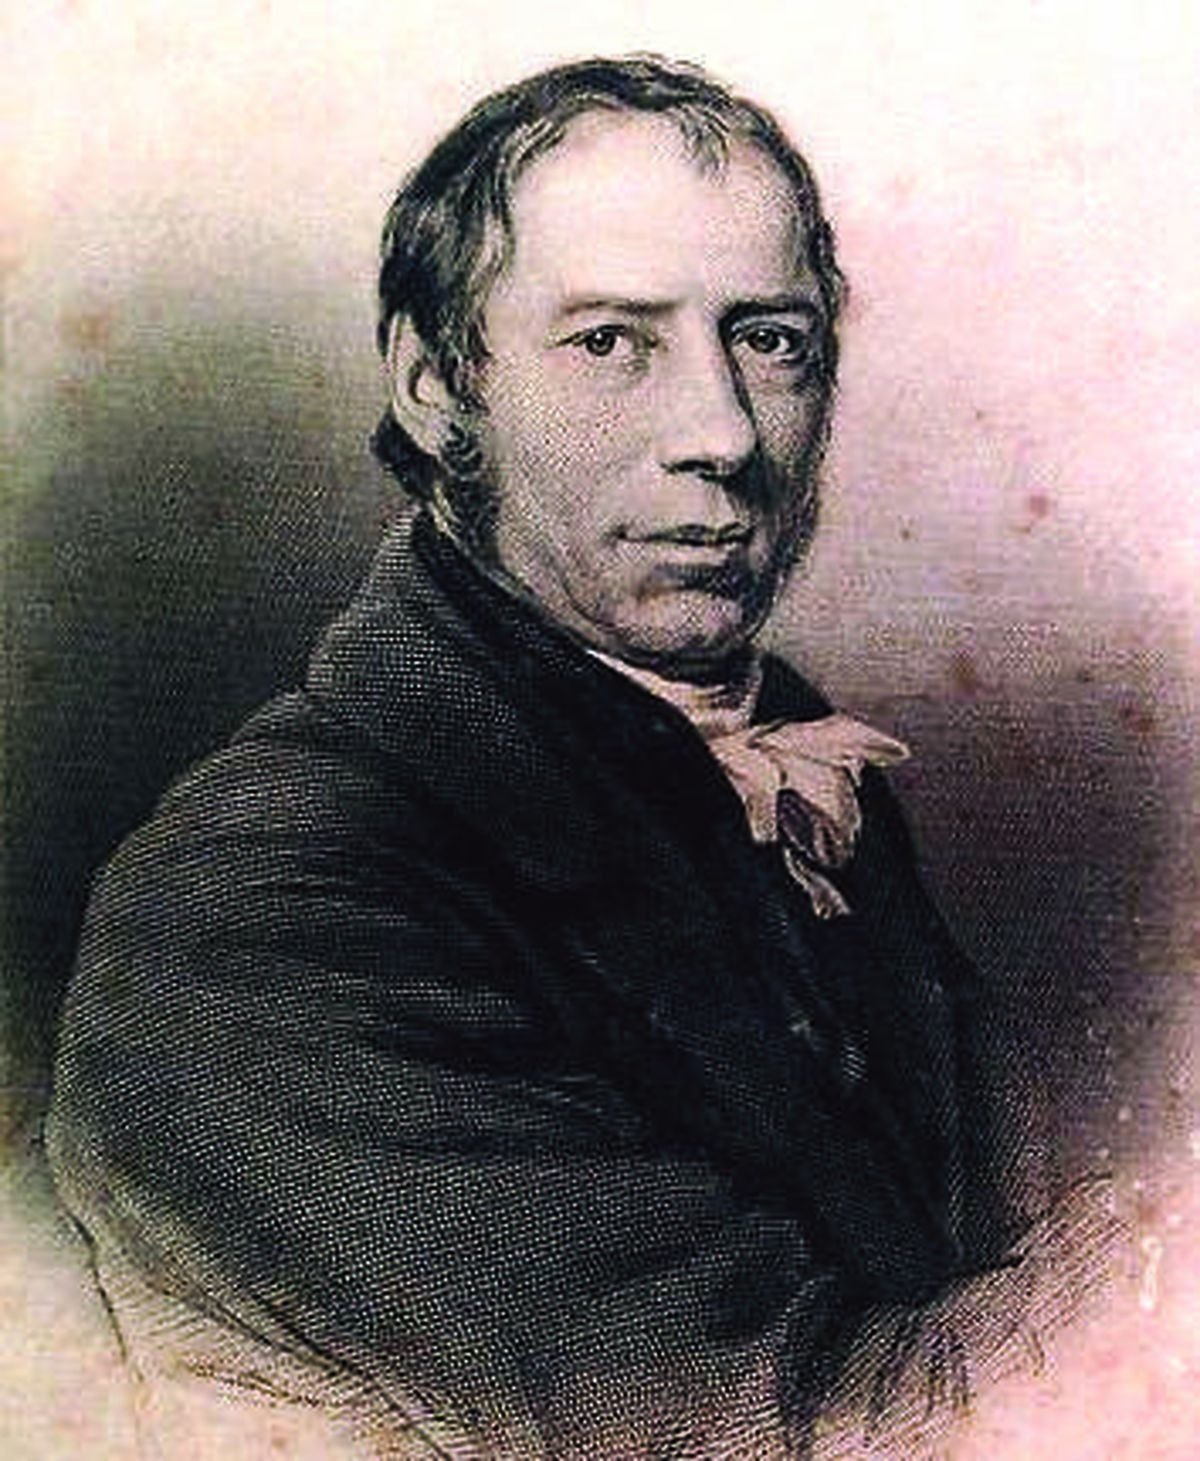 Richard Trevithick invented the steam locomotive